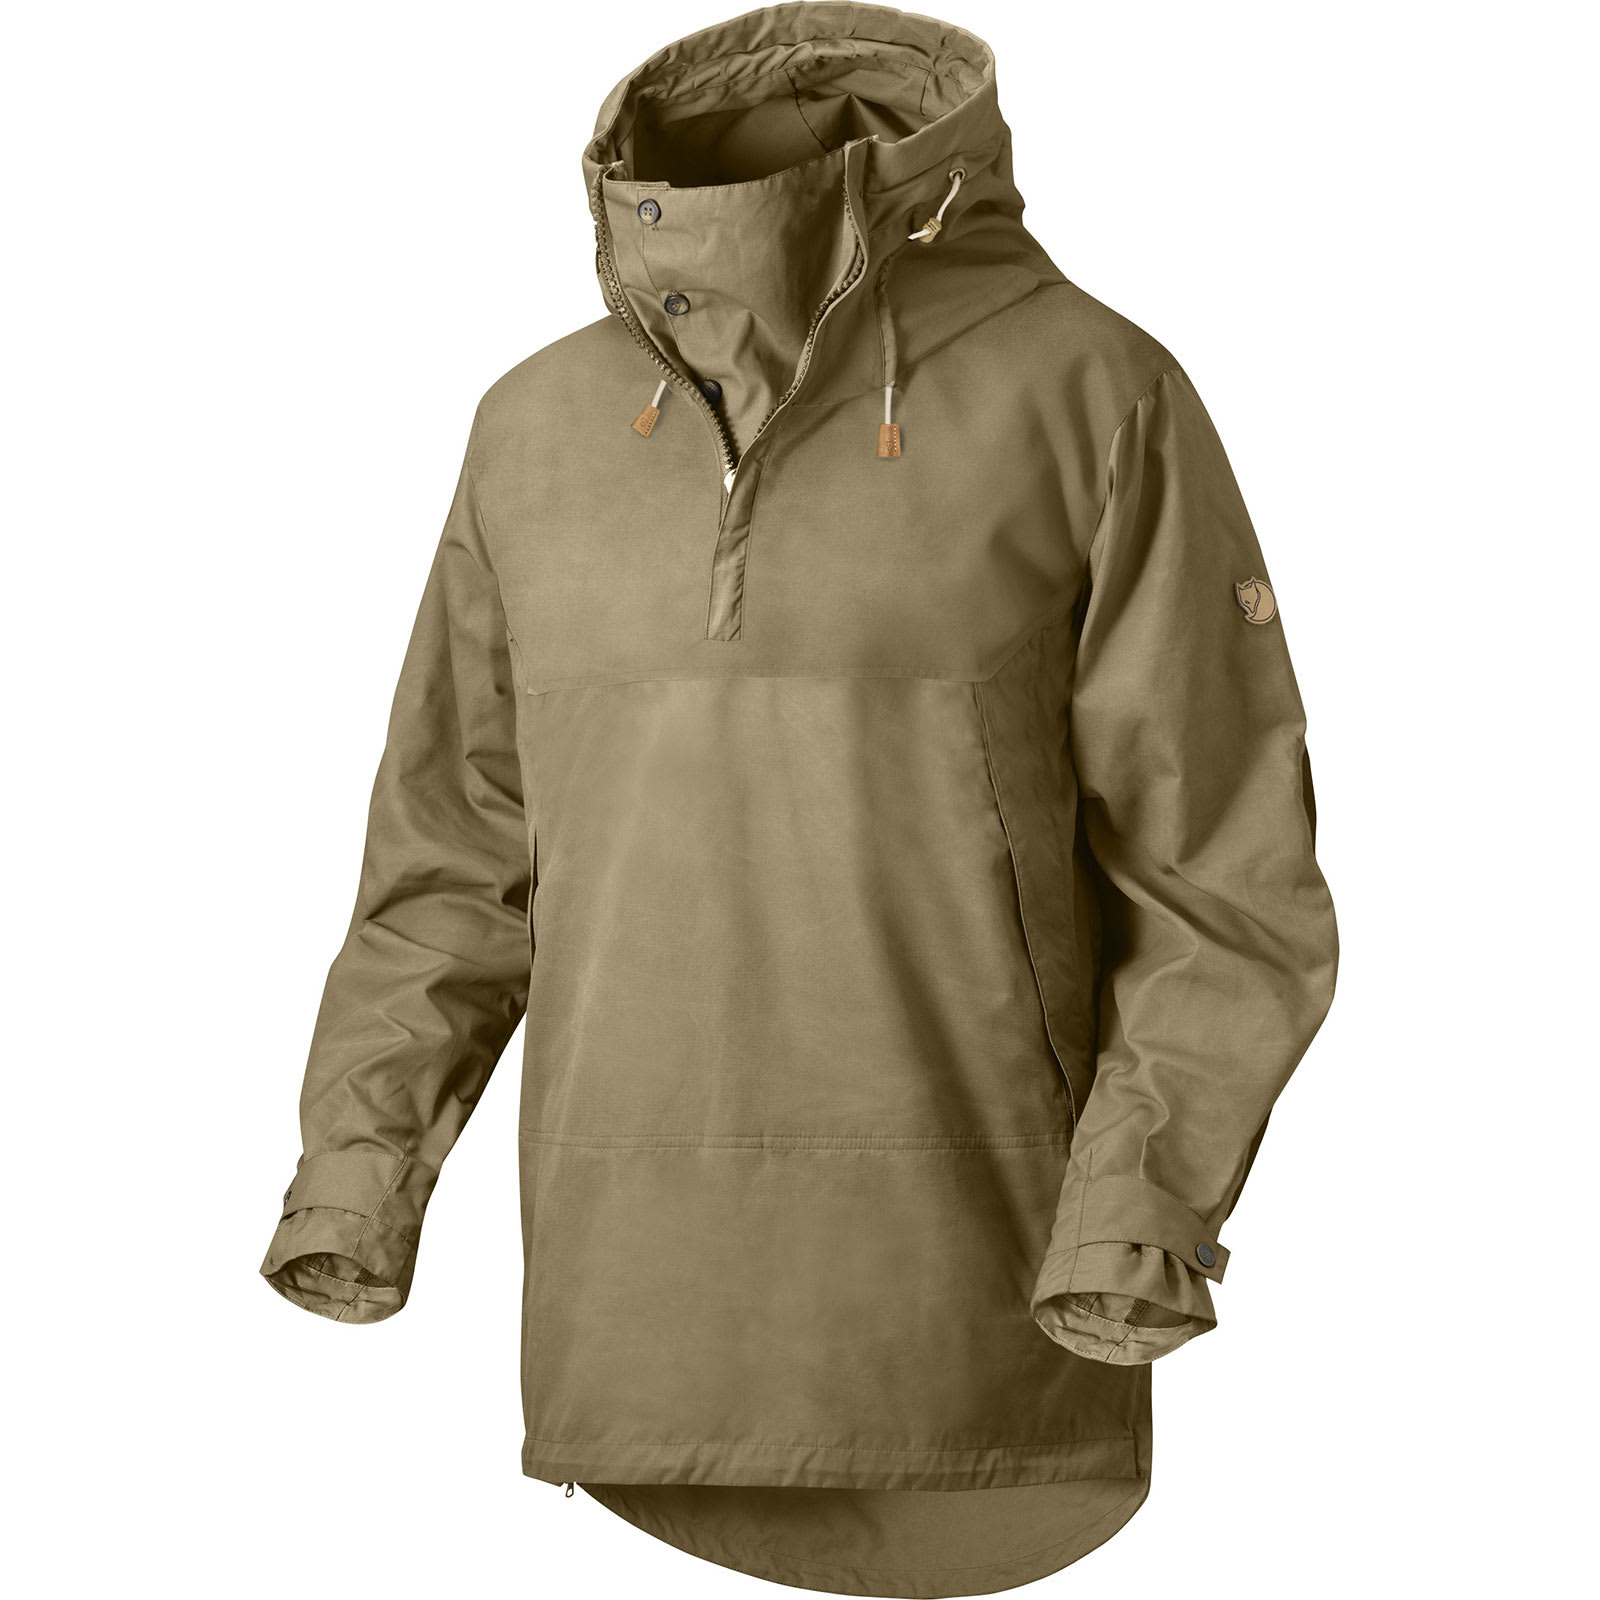 Buy Fj 228 Llr 228 Ven Anorak No 9 From Outnorth